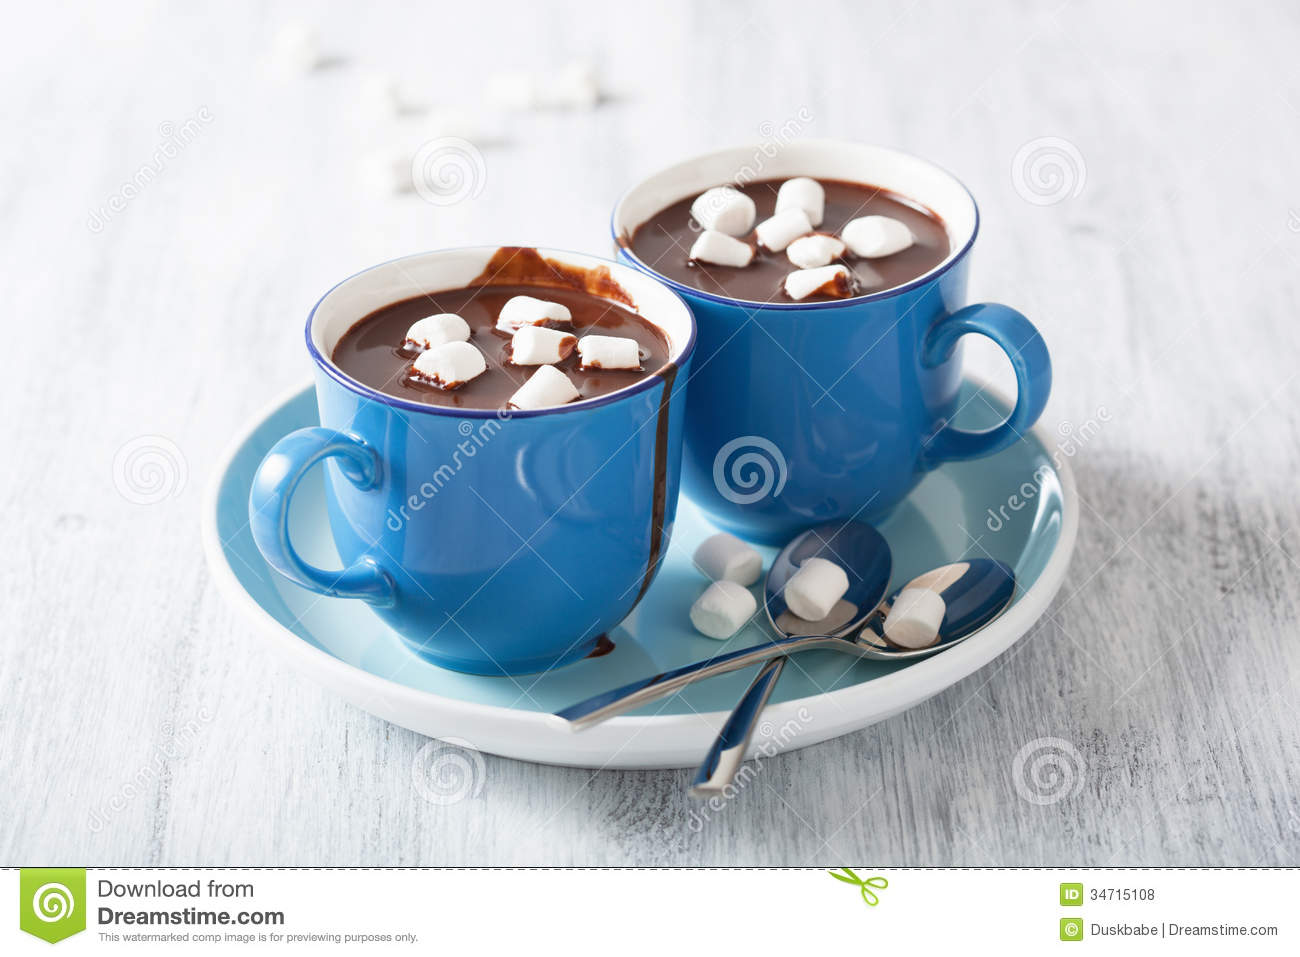 Hot Chocolate With Small Marshmallows Royalty Free Stock Photos - Image 34715108-6395